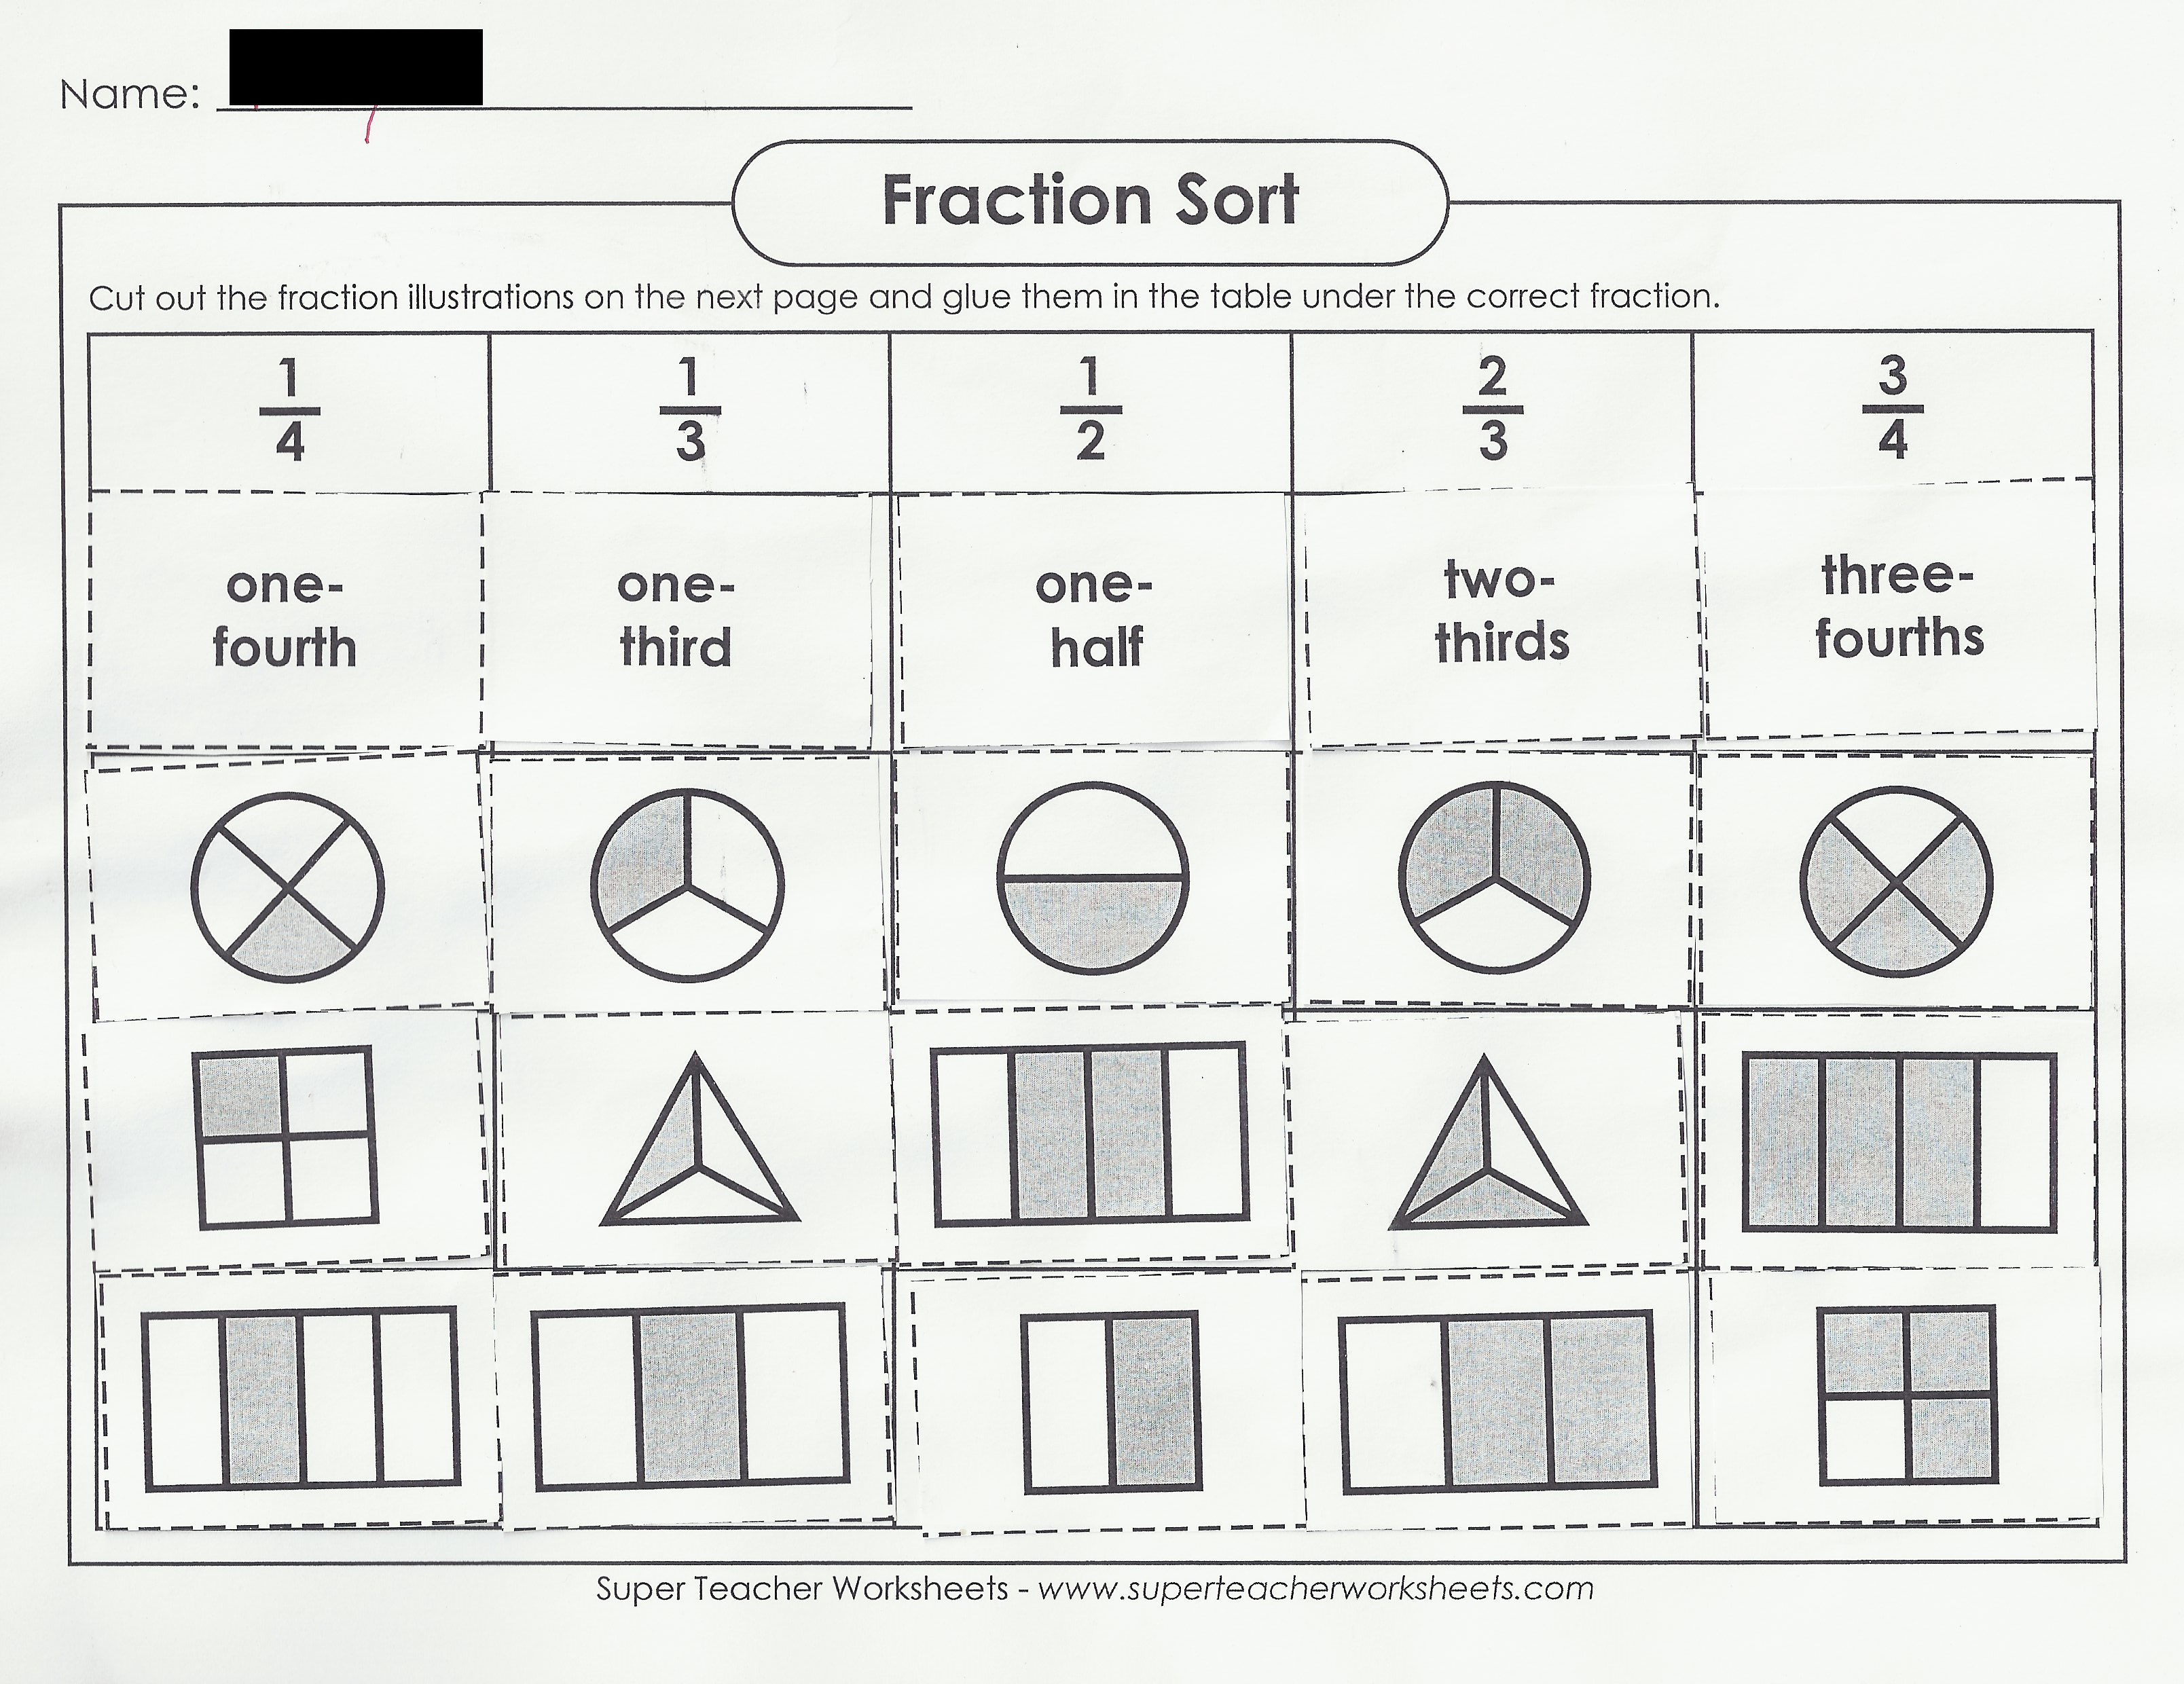 Ordering Fractions Worksheets 4th Grade add and subtract decimals – 4th Grade Equivalent Fractions Worksheet